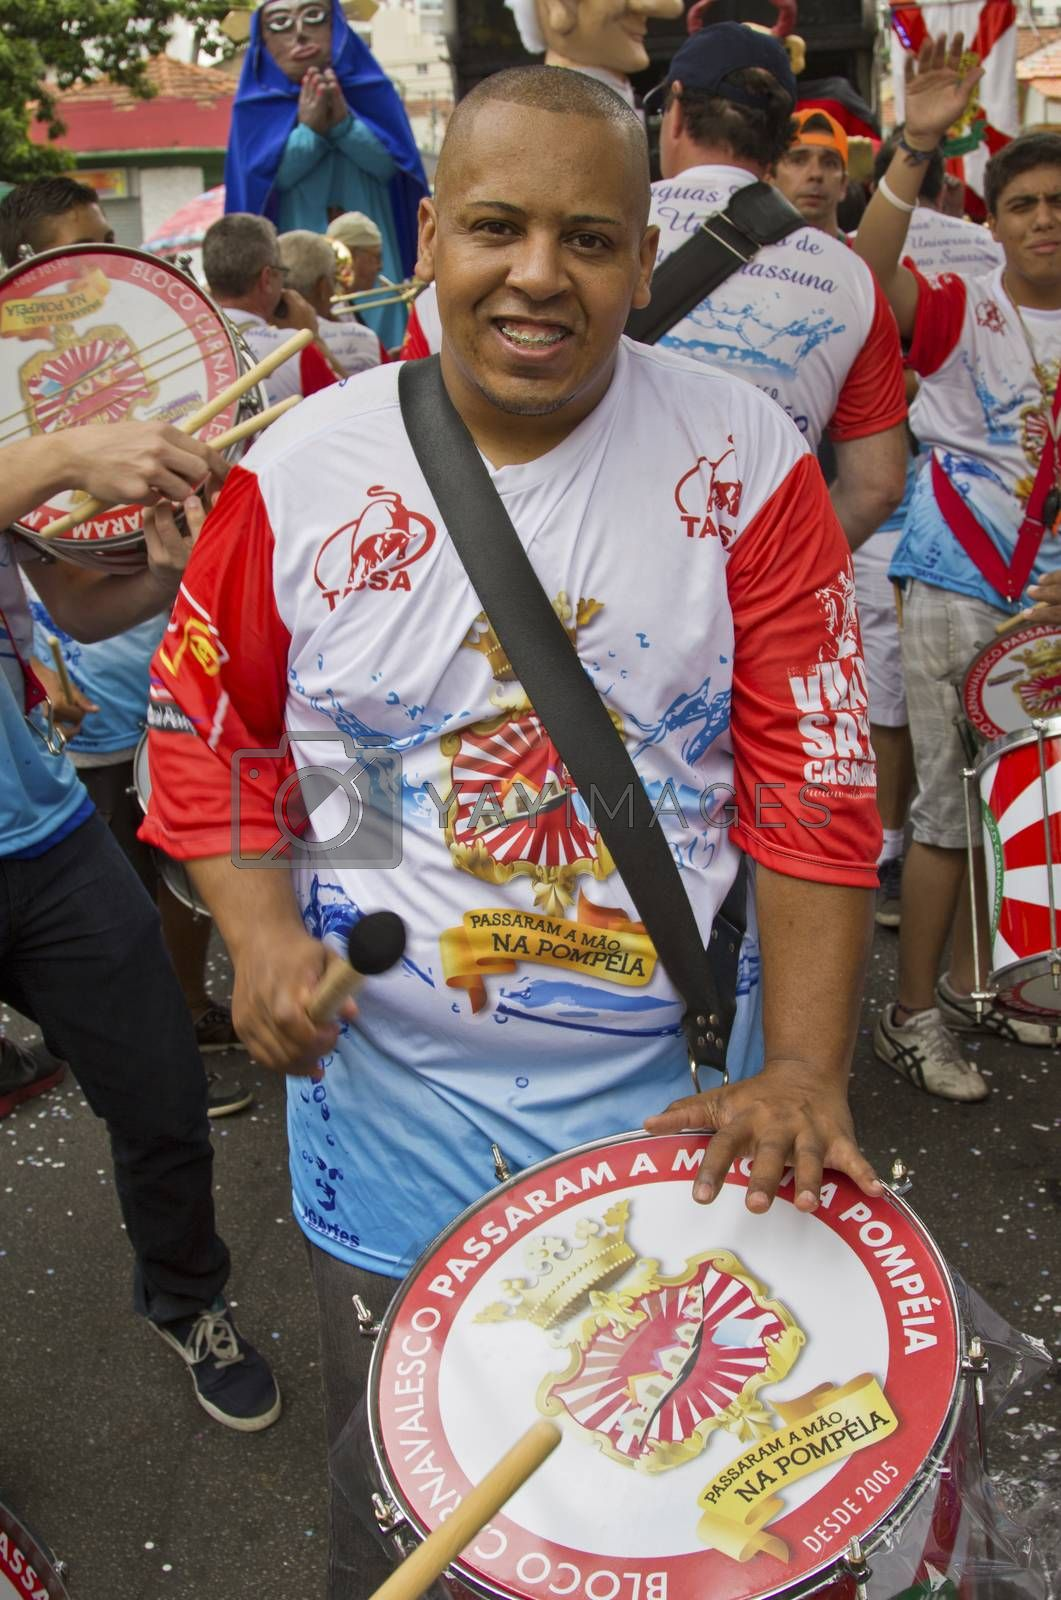 SAO PAULO, BRAZIL - JANUARY 31, 2015: An unidentified man playing drum in a traditional samba band participate at the annual Brazilian street carnival.